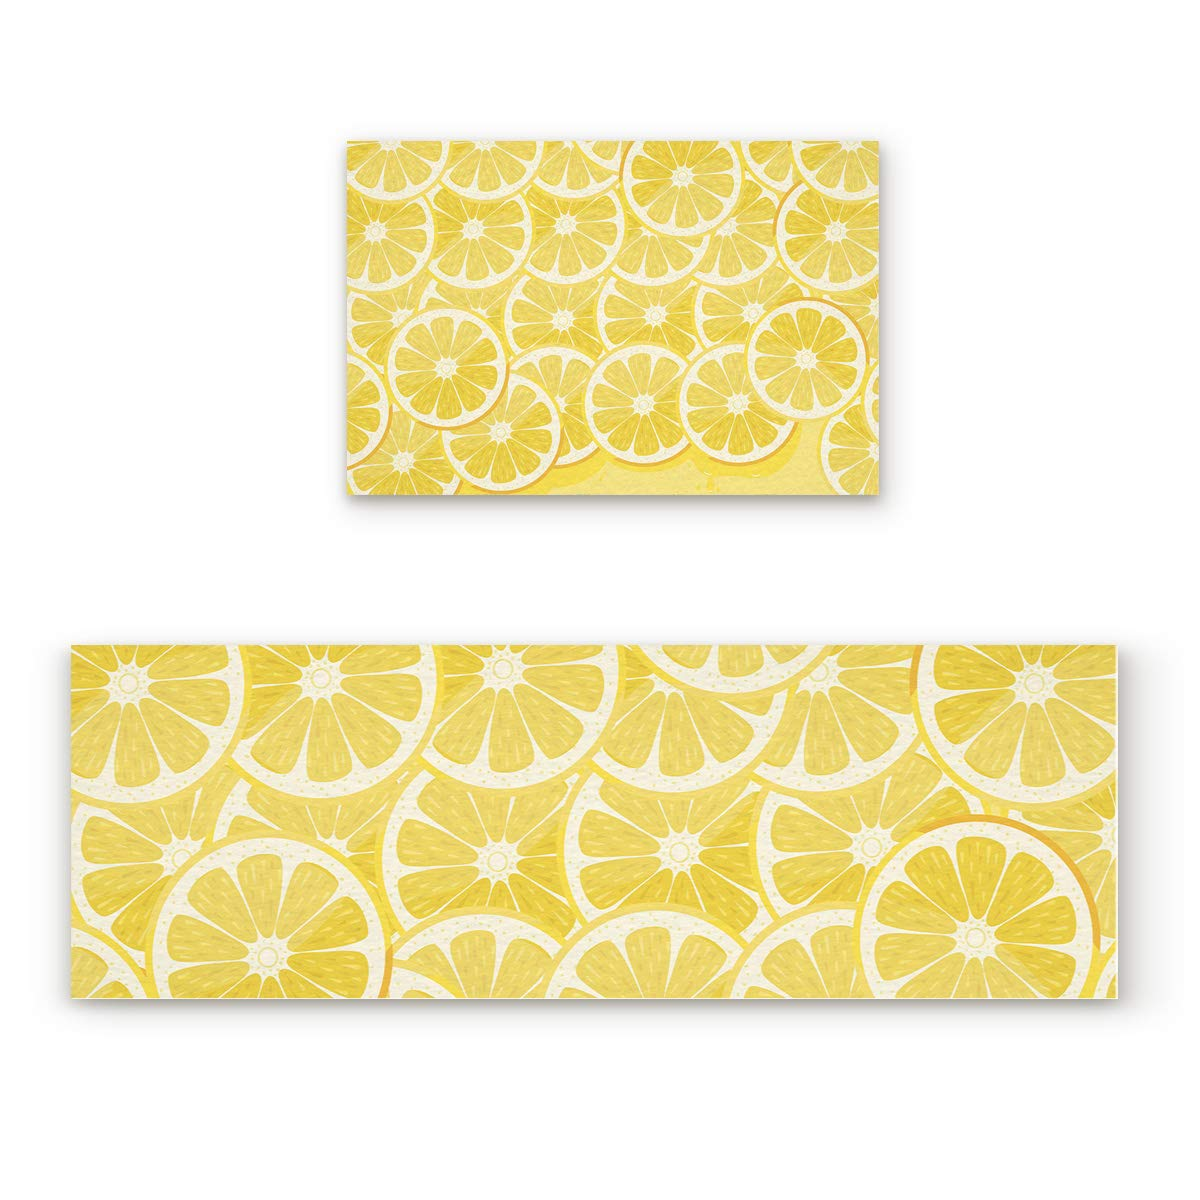 Cute Lemon Kitchen Rug Sets 2 Piece Non-Slip Kitchen Mats and Rugs